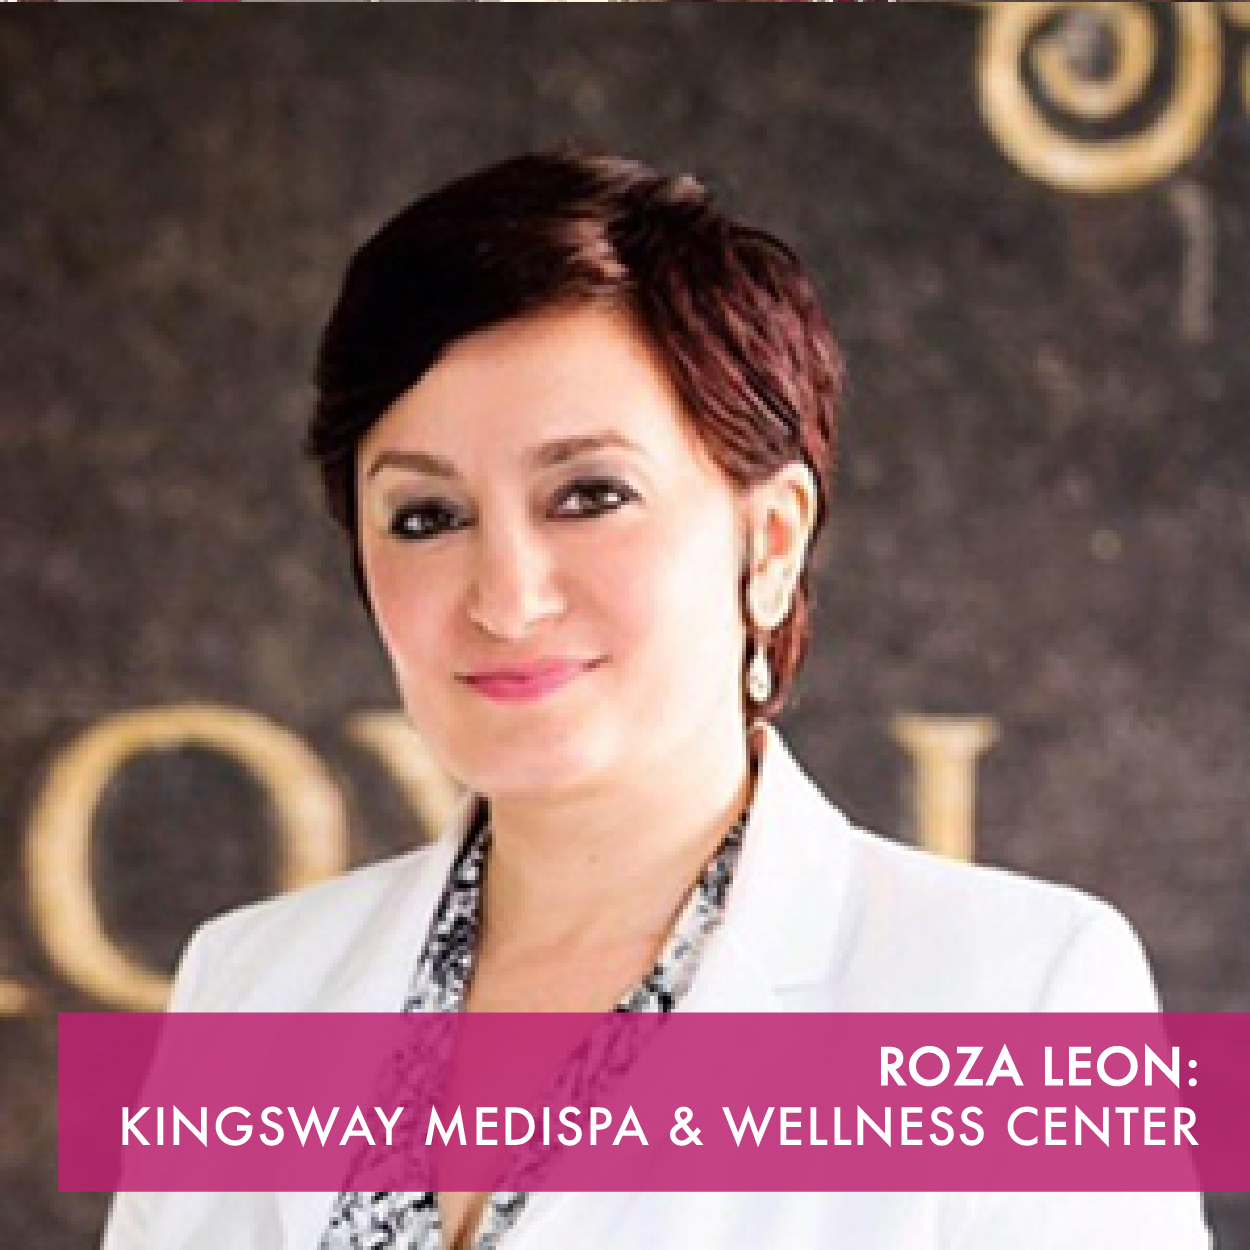 We are a luxurious spa offering skin, hair, and body treatments that vary from holistic to medical, advanced to non-invasive therapies, performed by highly qualified practitioners.